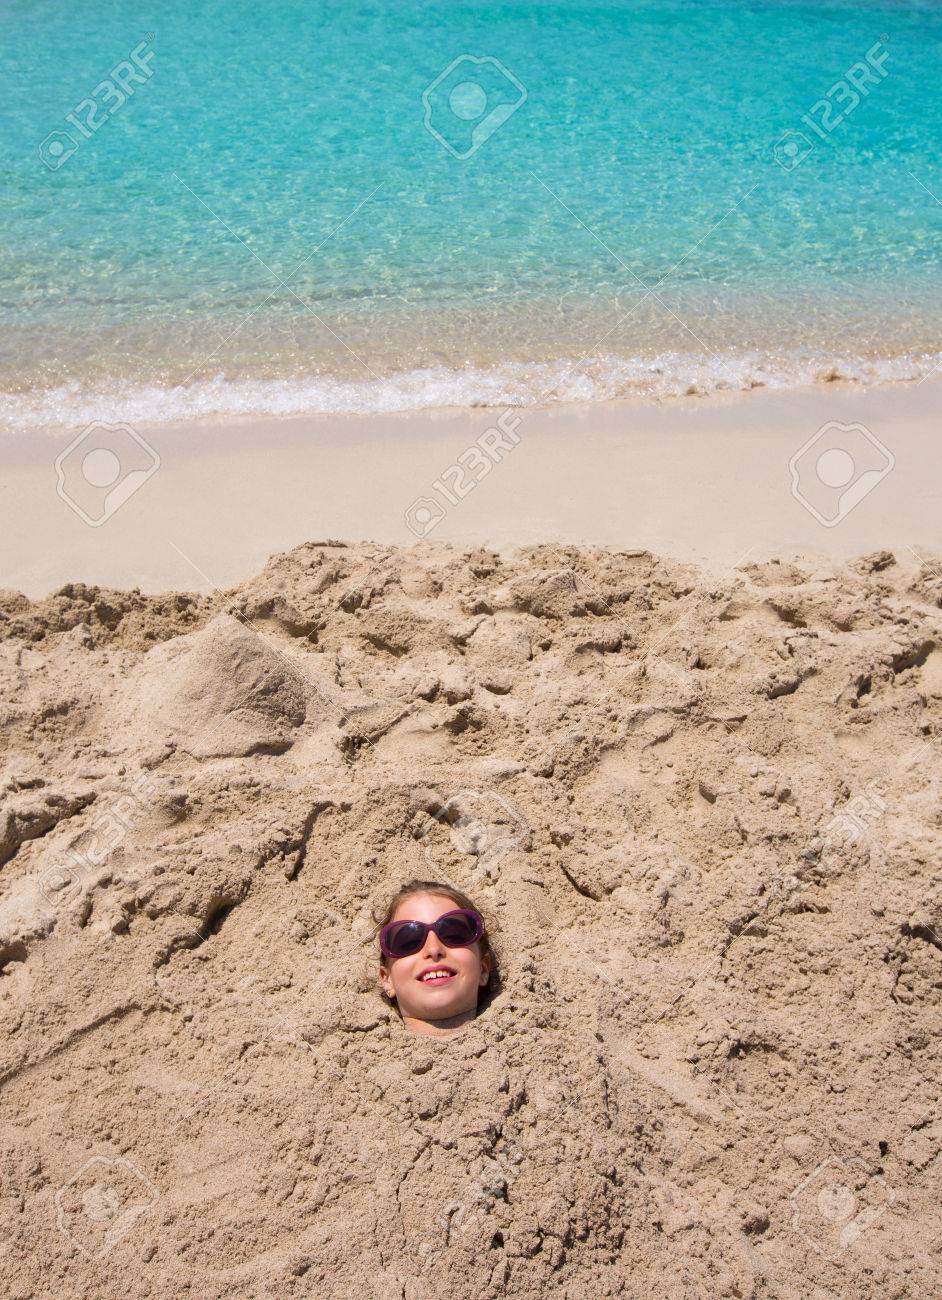 Funny Kid Girl Playing Buried In Beach Sand Smiling With Sunglasses Stock Photo Picture And Royalty Free Image Image 23997407